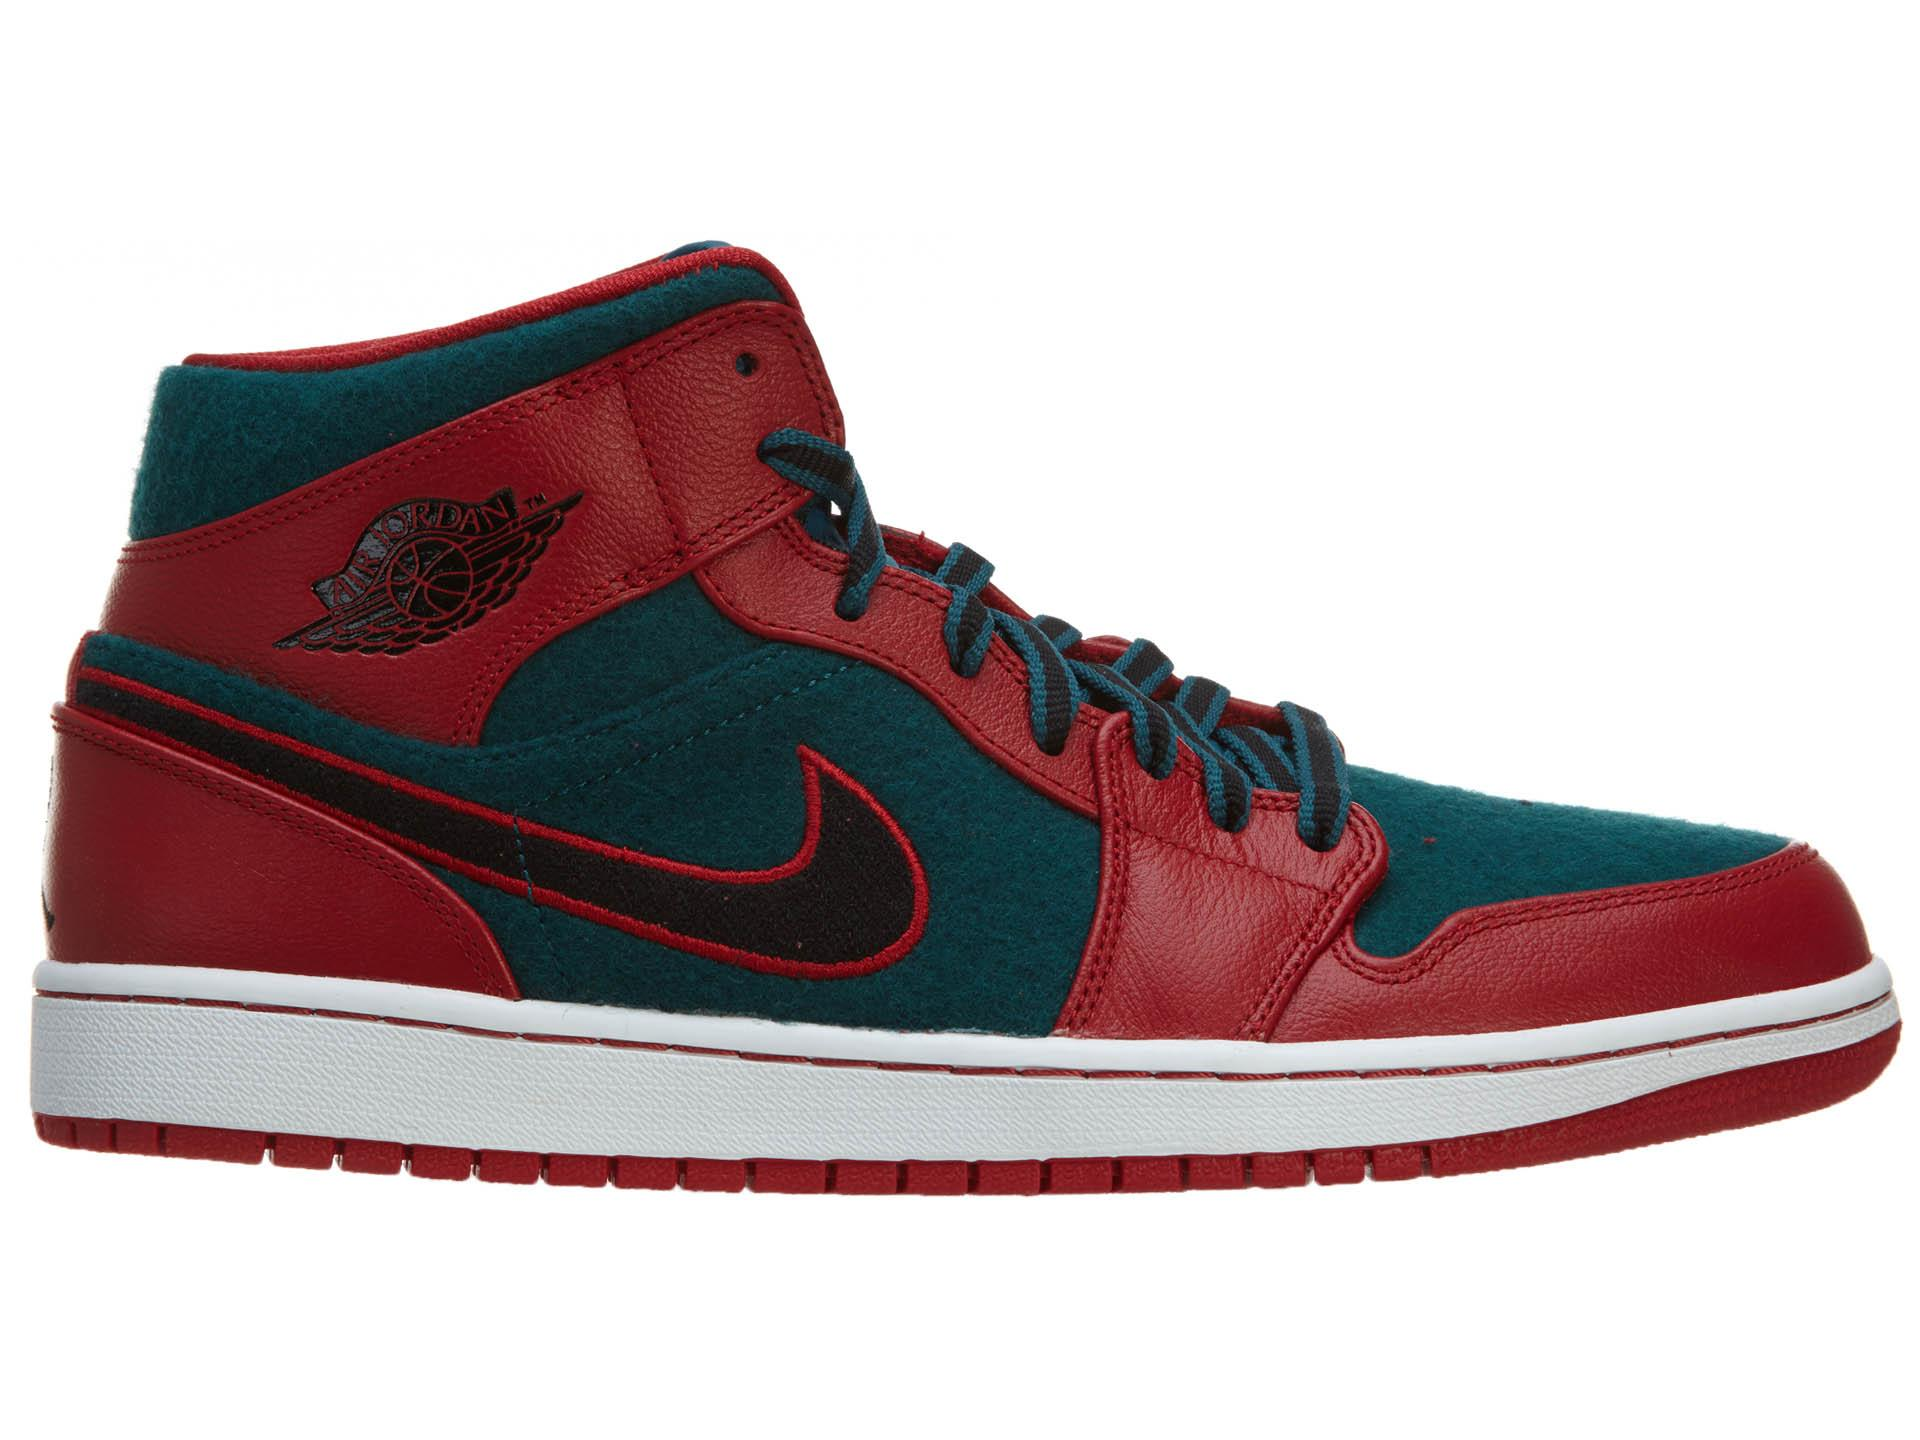 cf9ecfd9 Lyst - Nike Air 1 Mid Gym Red/black-dark Sea in Red for Men